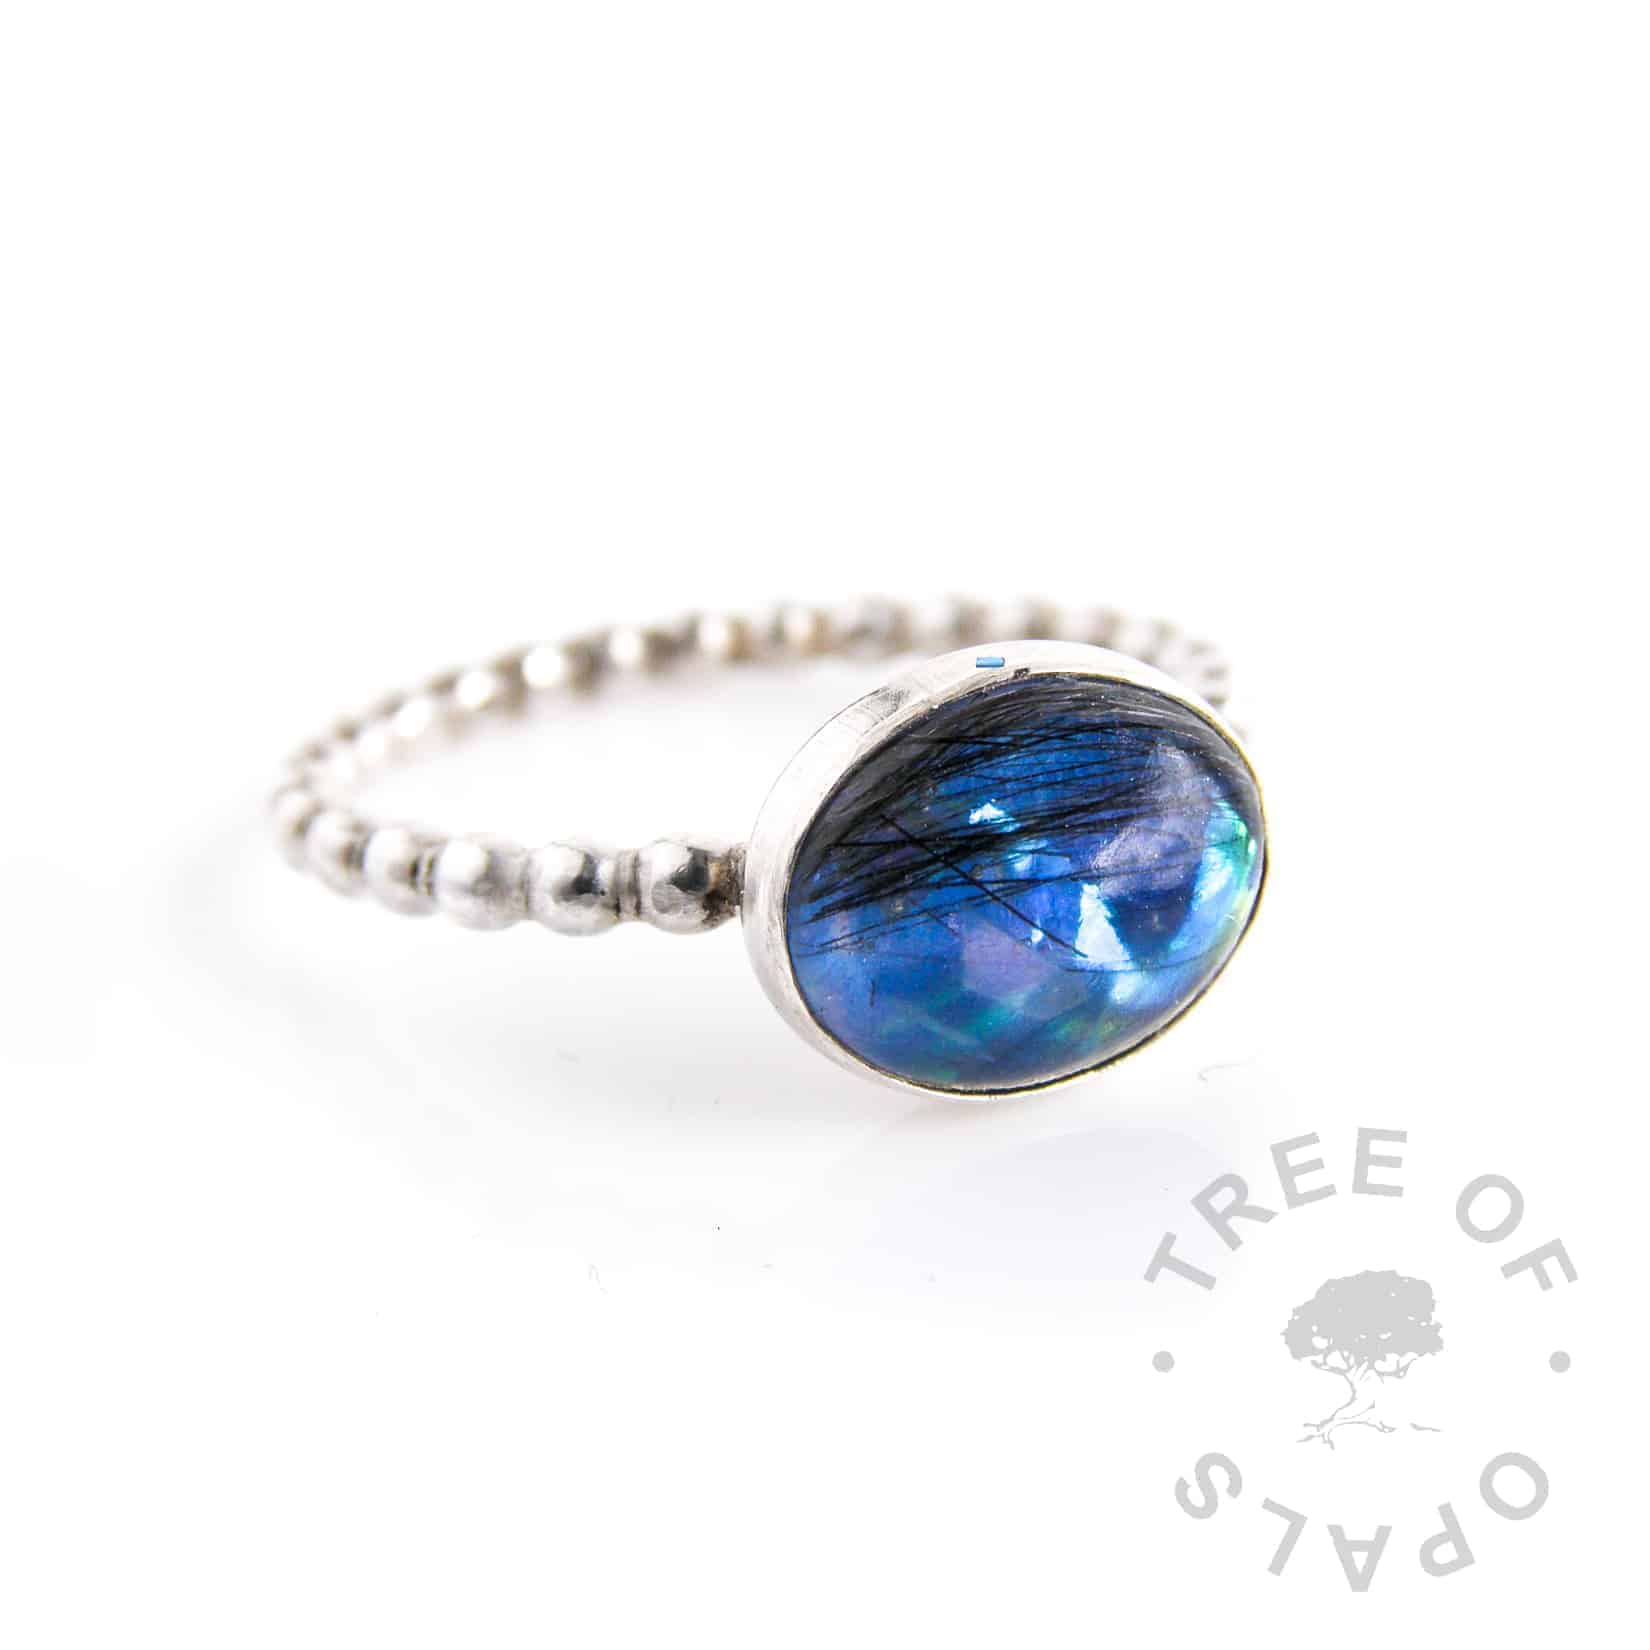 lock of hair ring blue opalescent flakes and Aegean blue shimmer background in an oval bezel, bubble wire band. Handmade with sterling silver by Tree of Opals